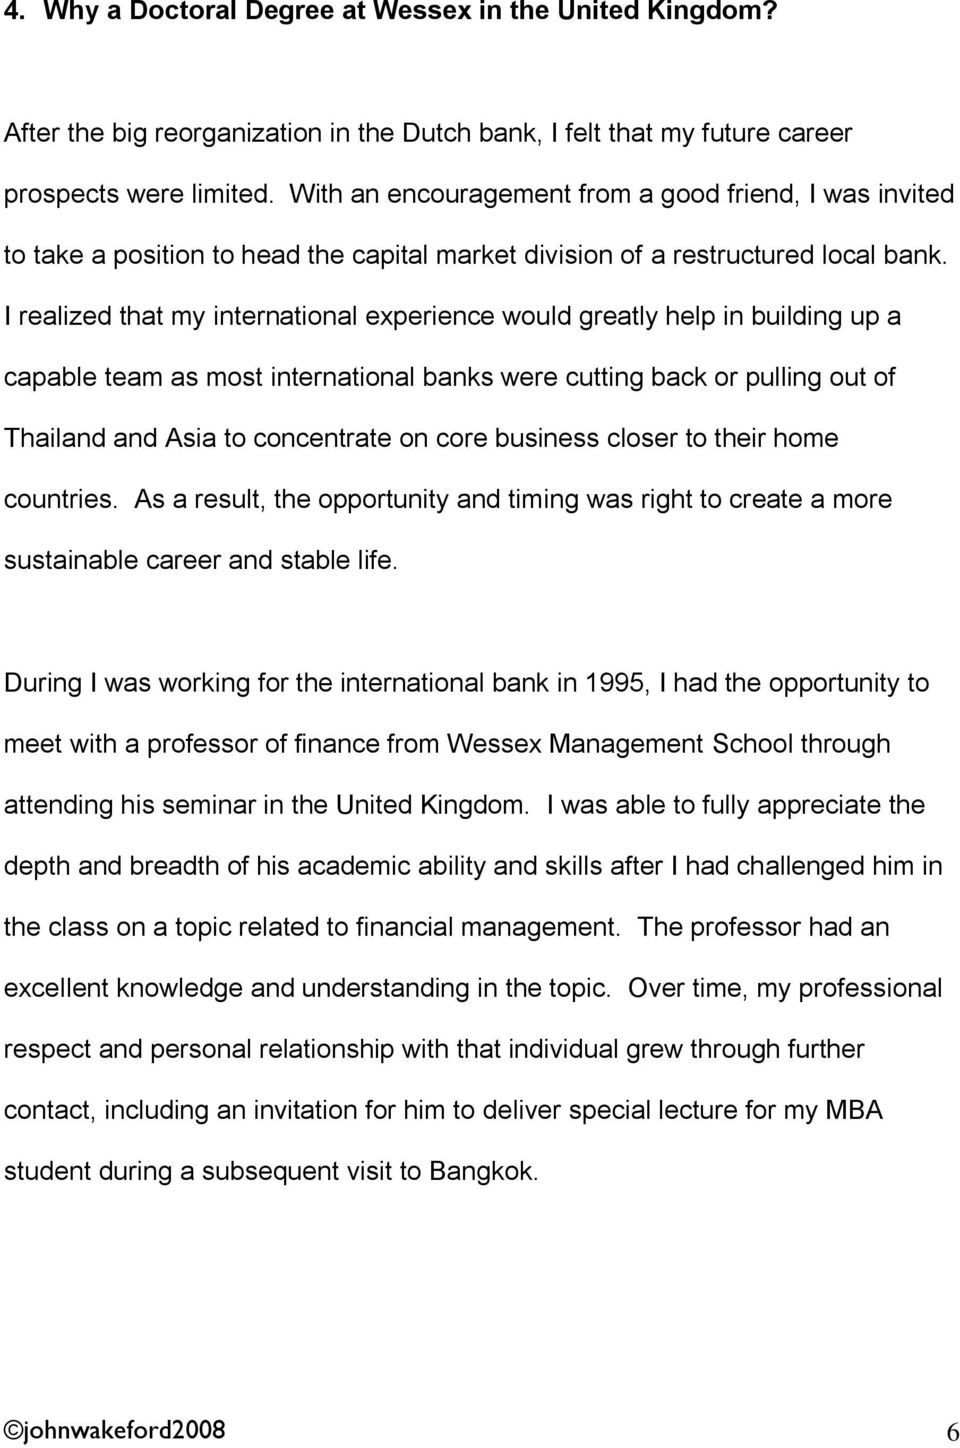 I realized that my international experience would greatly help in building up a capable team as most international banks were cutting back or pulling out of Thailand and Asia to concentrate on core